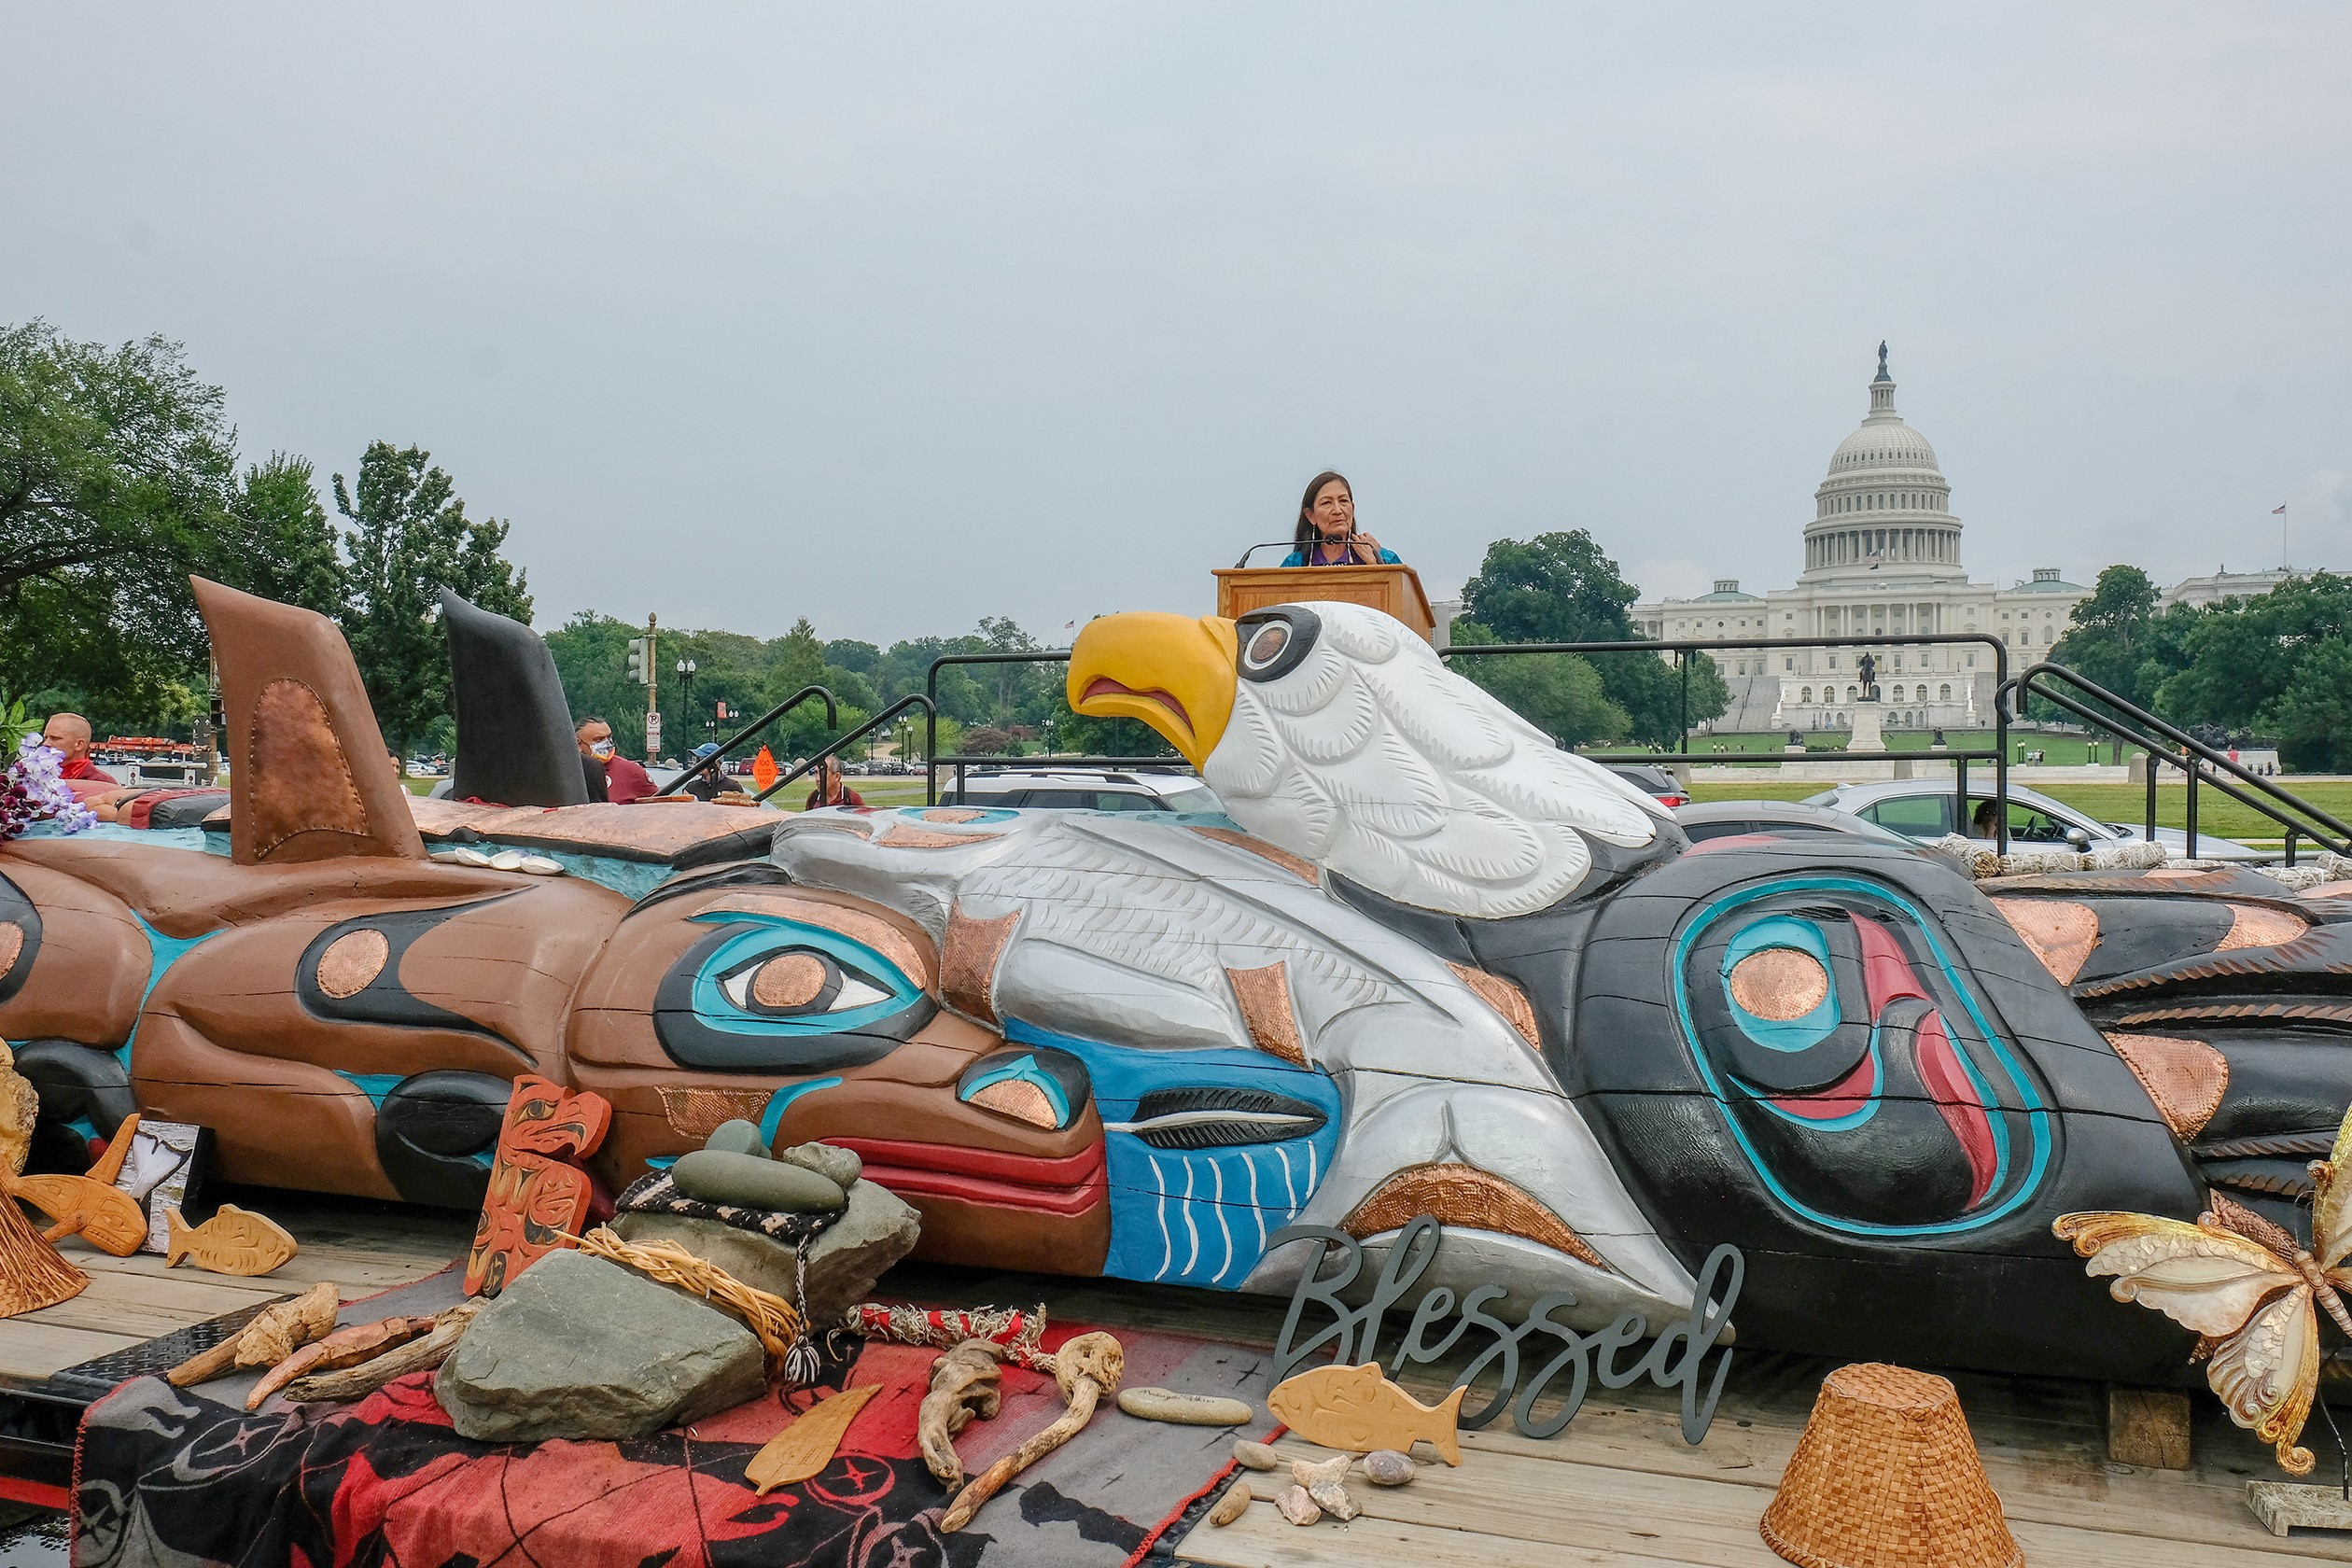 Secretary Haaland stands in front of the US Capitol Building with the totem in the foreground.